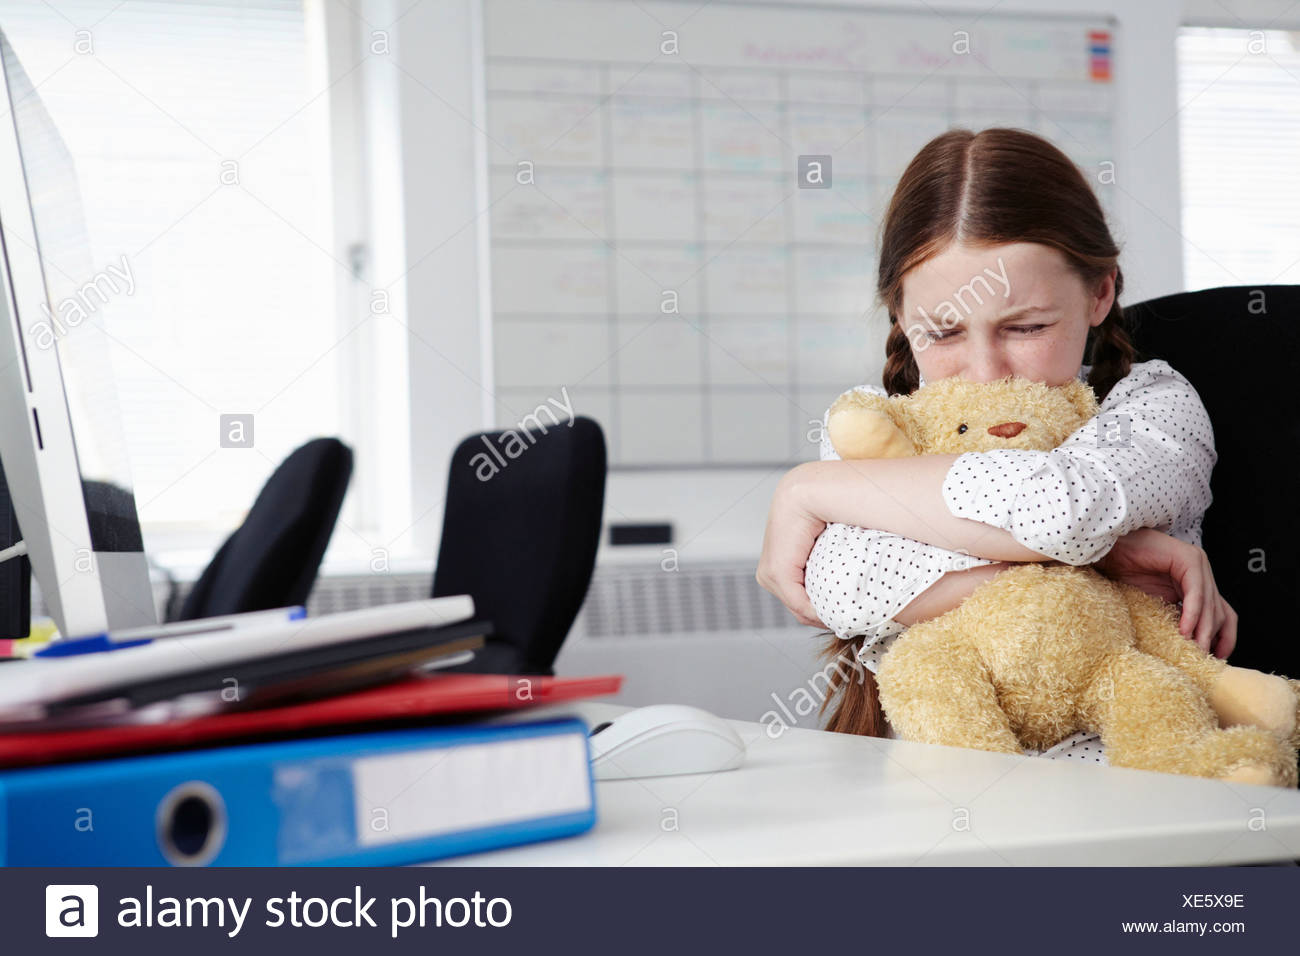 Girl sitting in office hugging teddy bear and crying - Stock Image